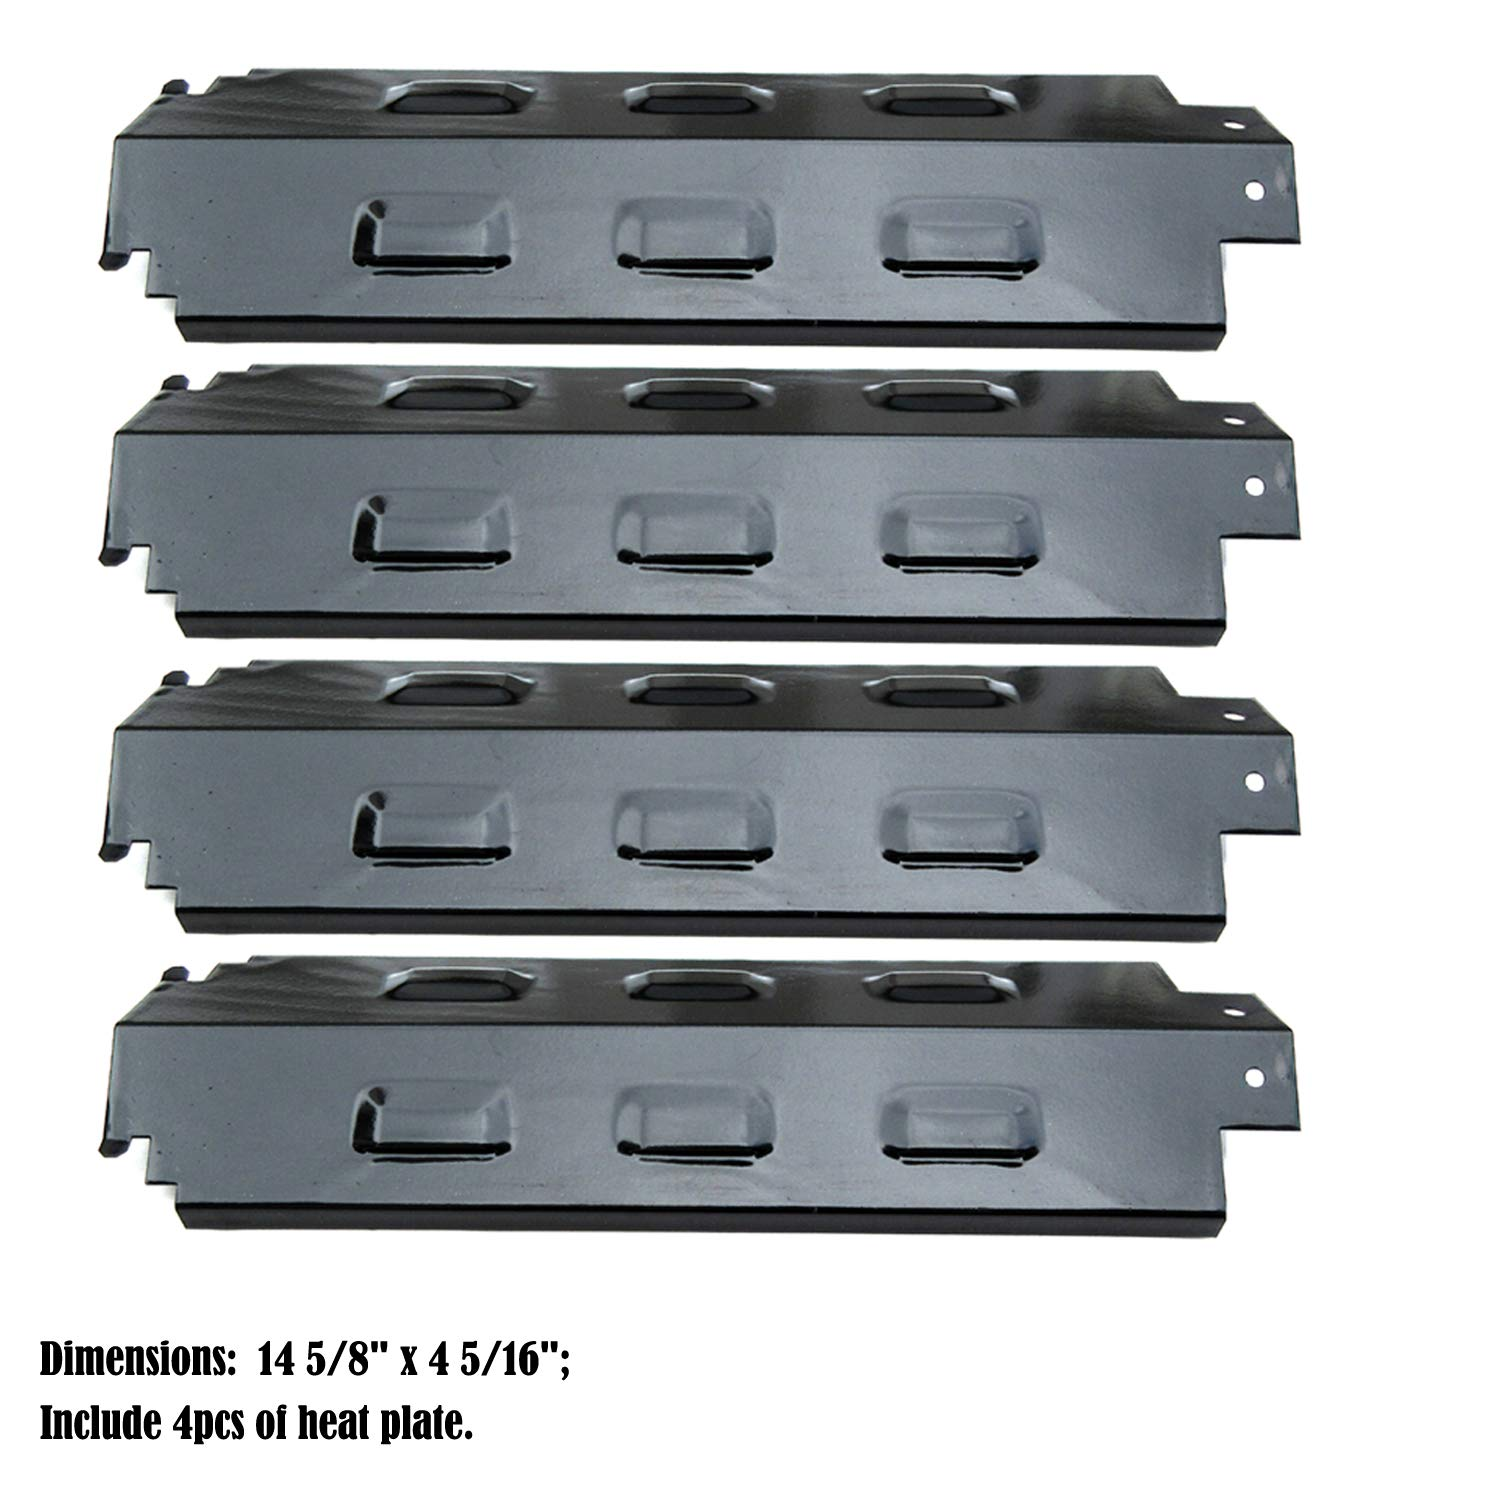 Direct store Parts DP133 (4-pack) Porcelain Steel Heat Shield/Heat Plates Replacement Charbroil, Kenmore, Gas Grill Models (Porcelain Steel)